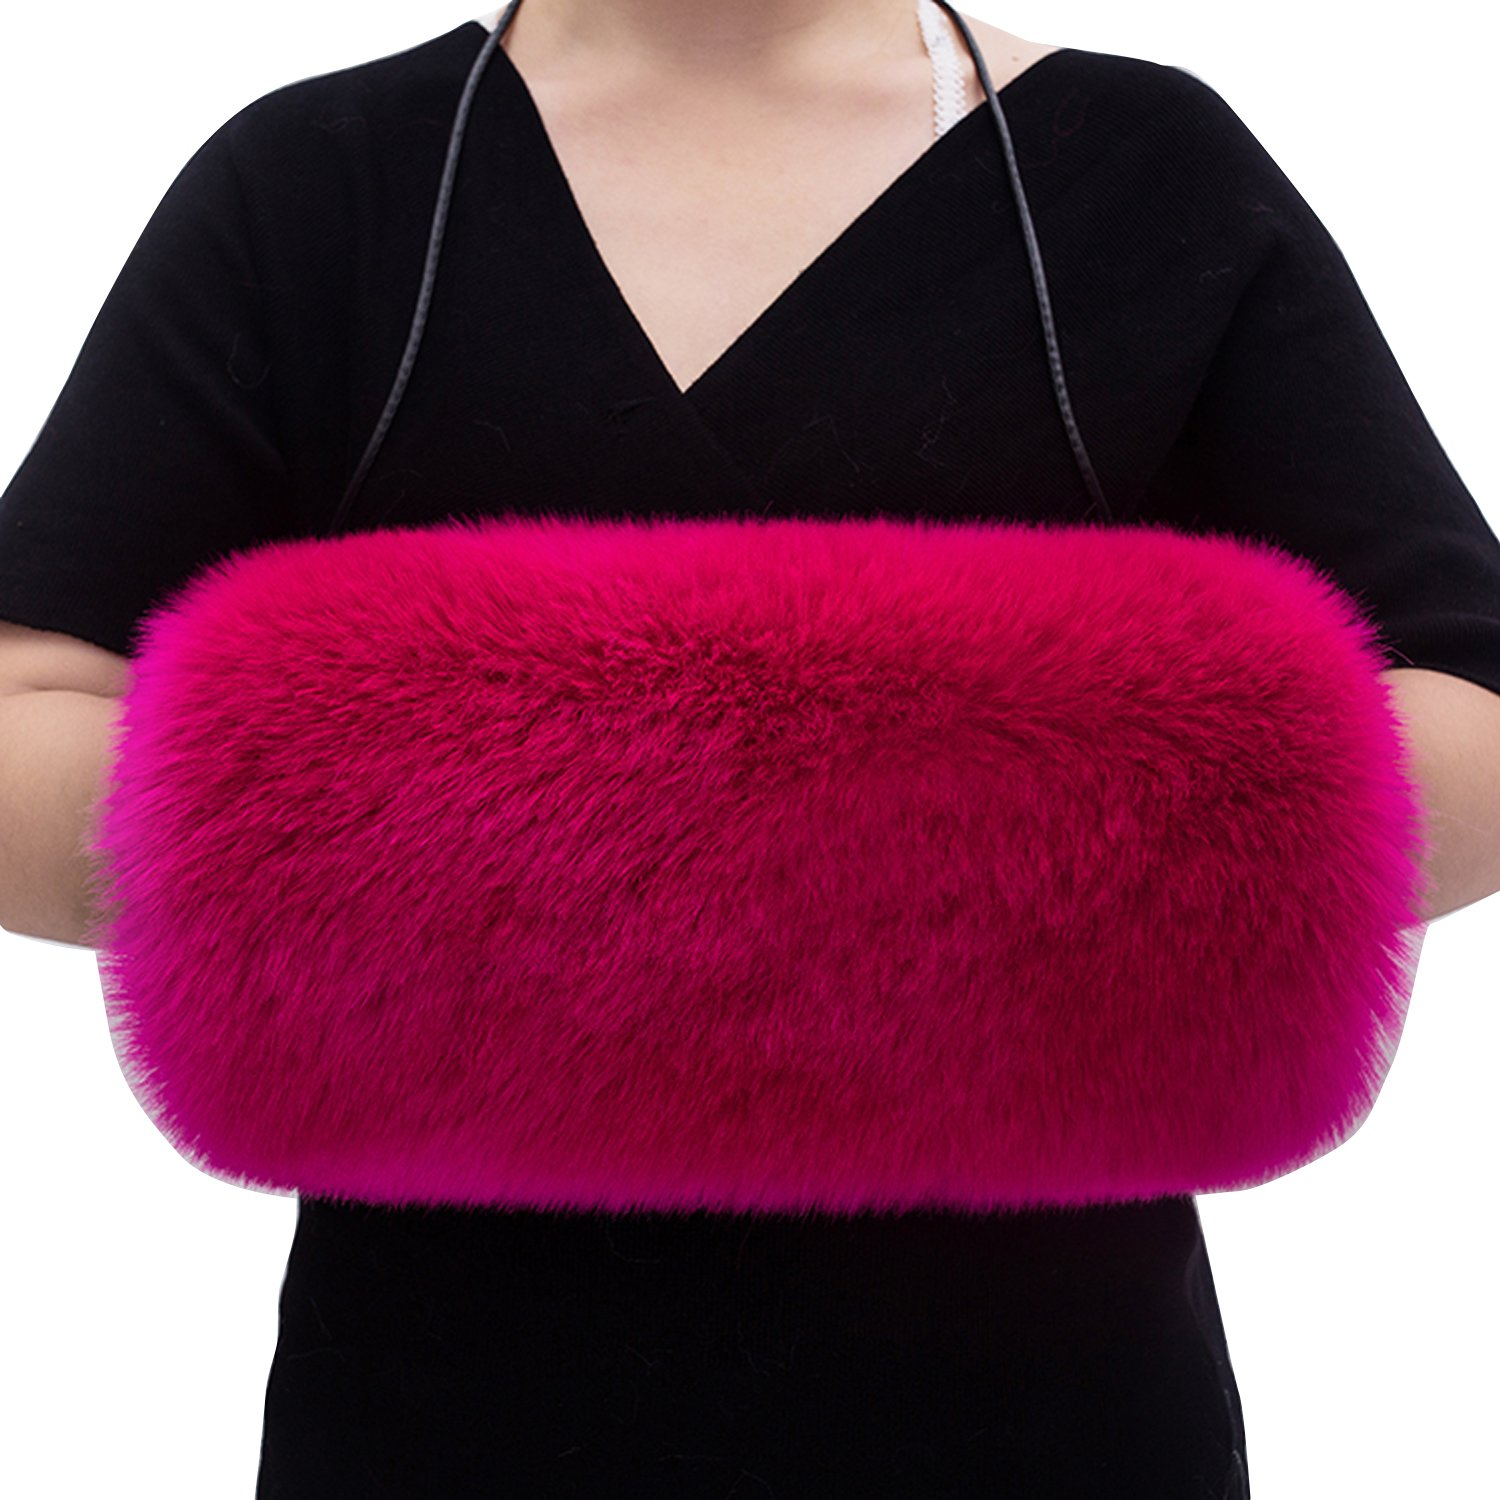 Winter Bridal Faux Fur Muff Handmade Women's Hand Muffs (Color-6, One size)